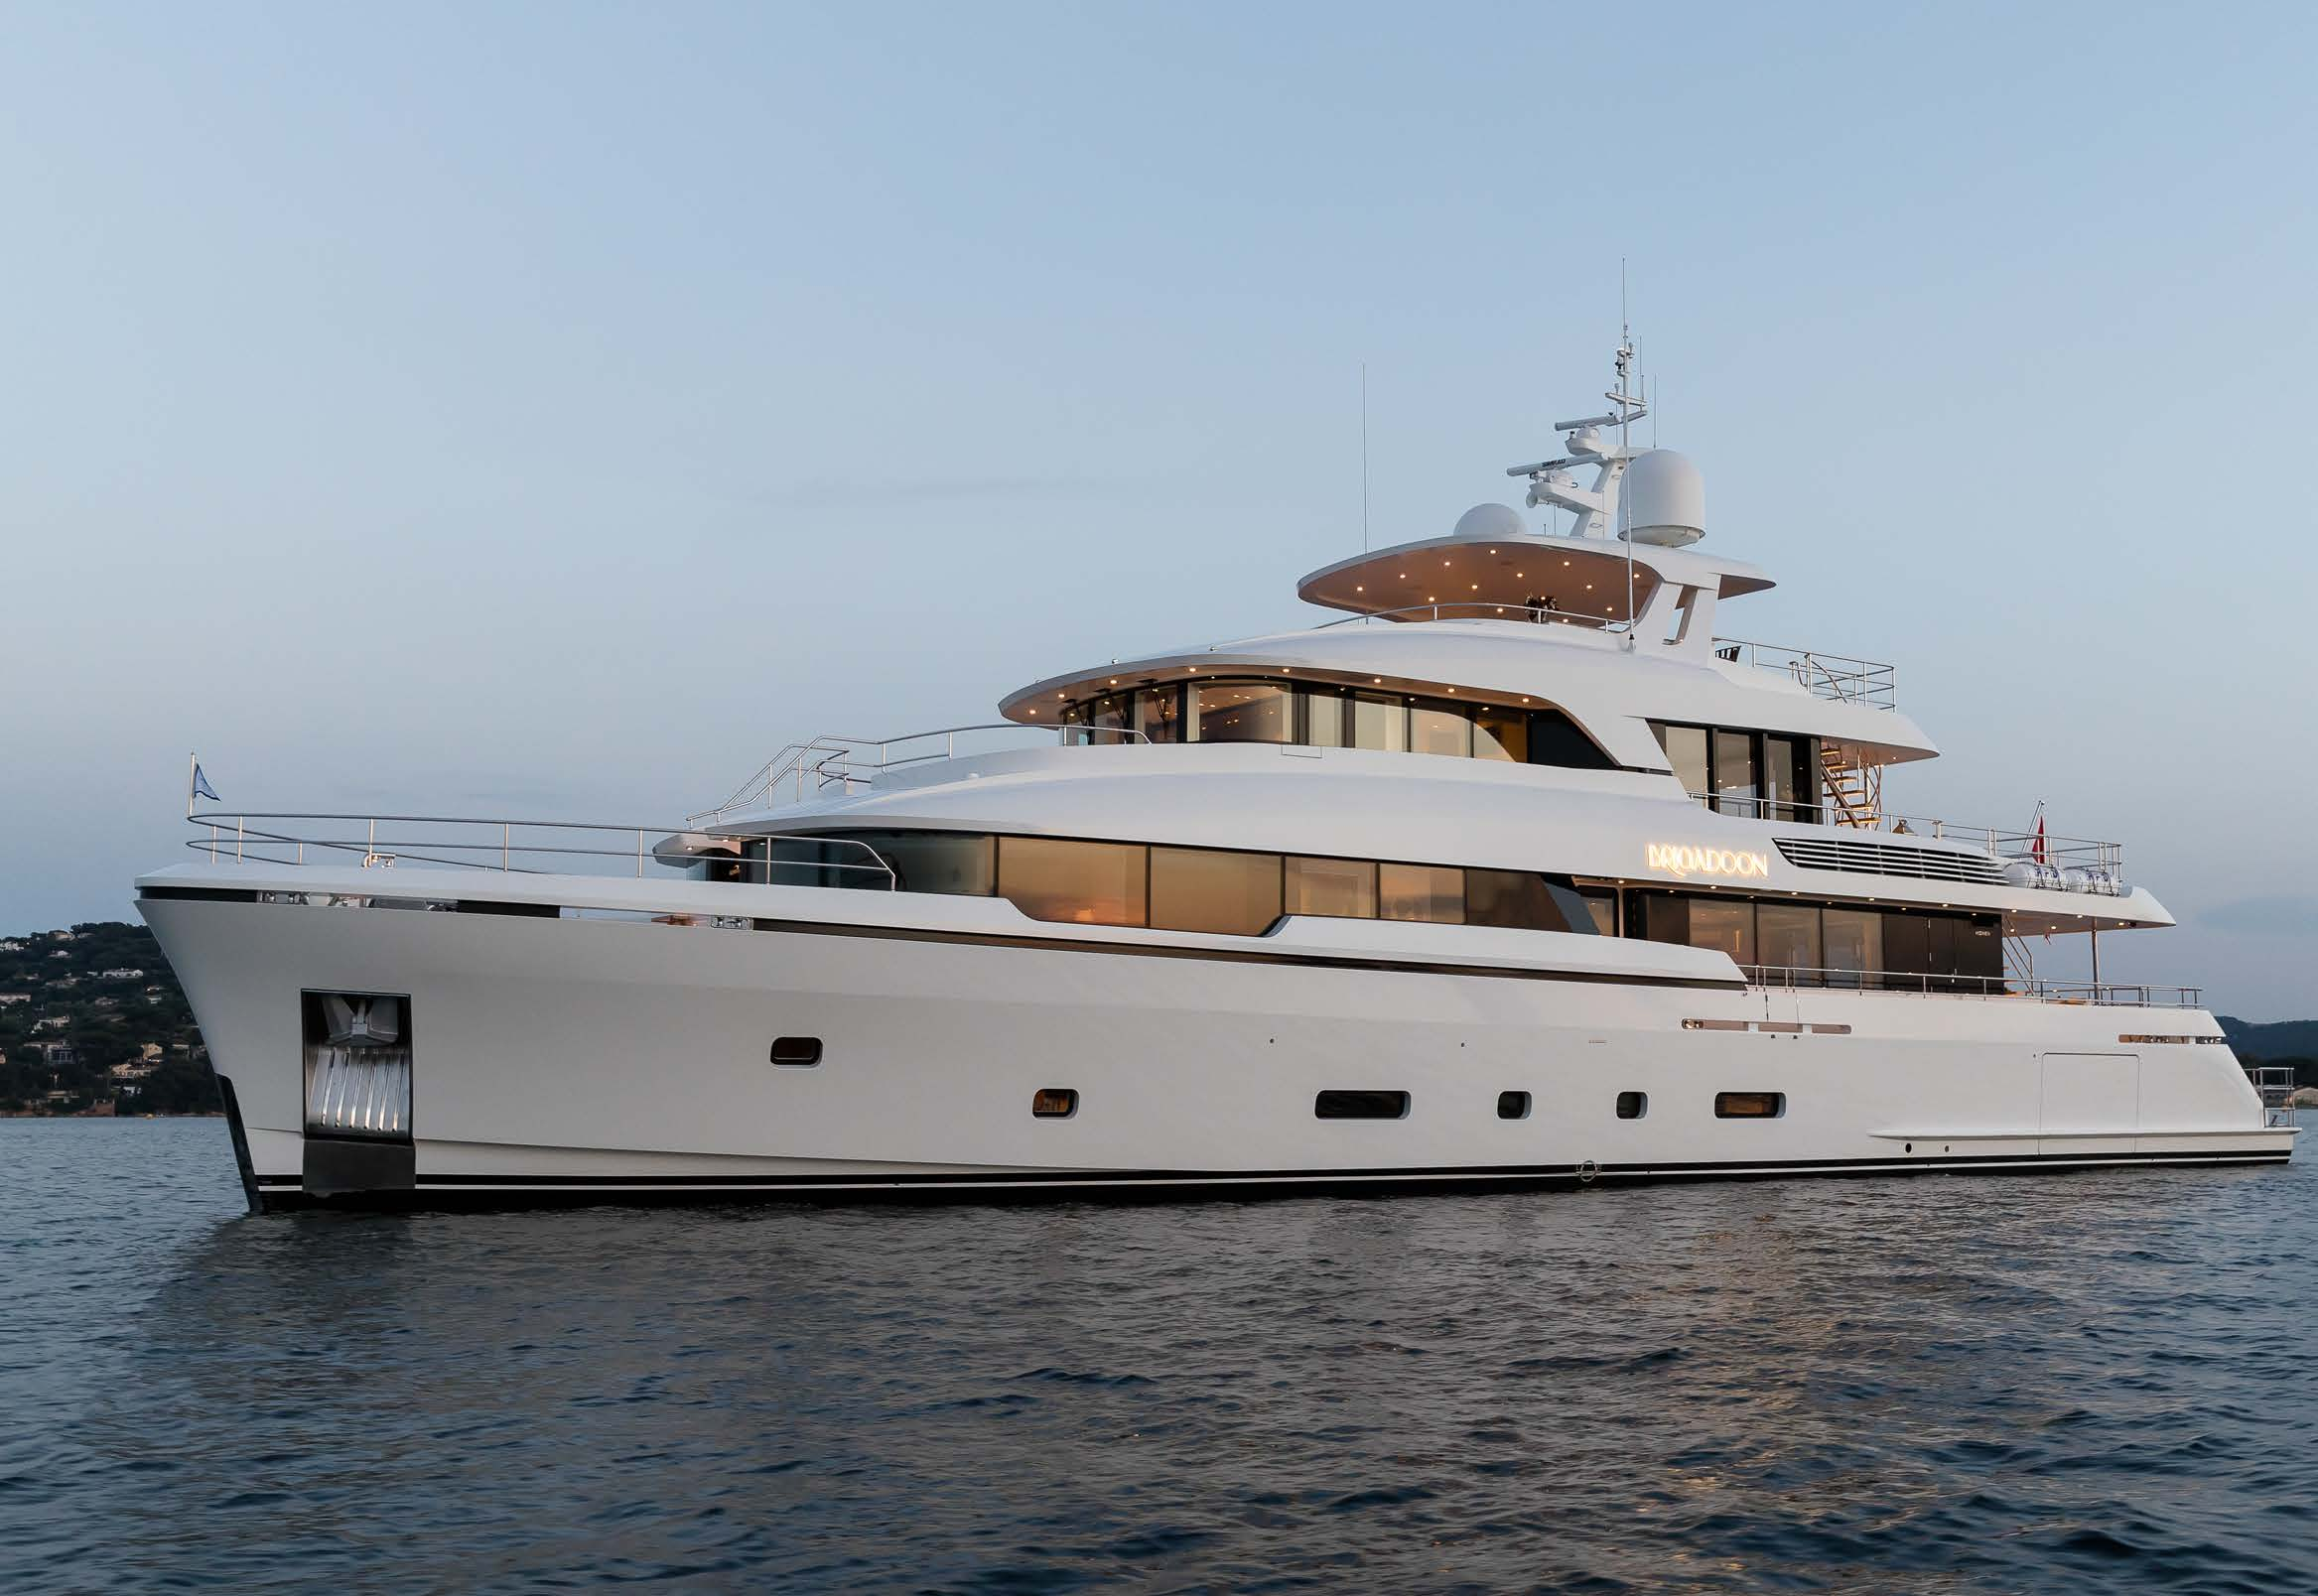 M/Y MOONEN Y201 yacht for sale anchored